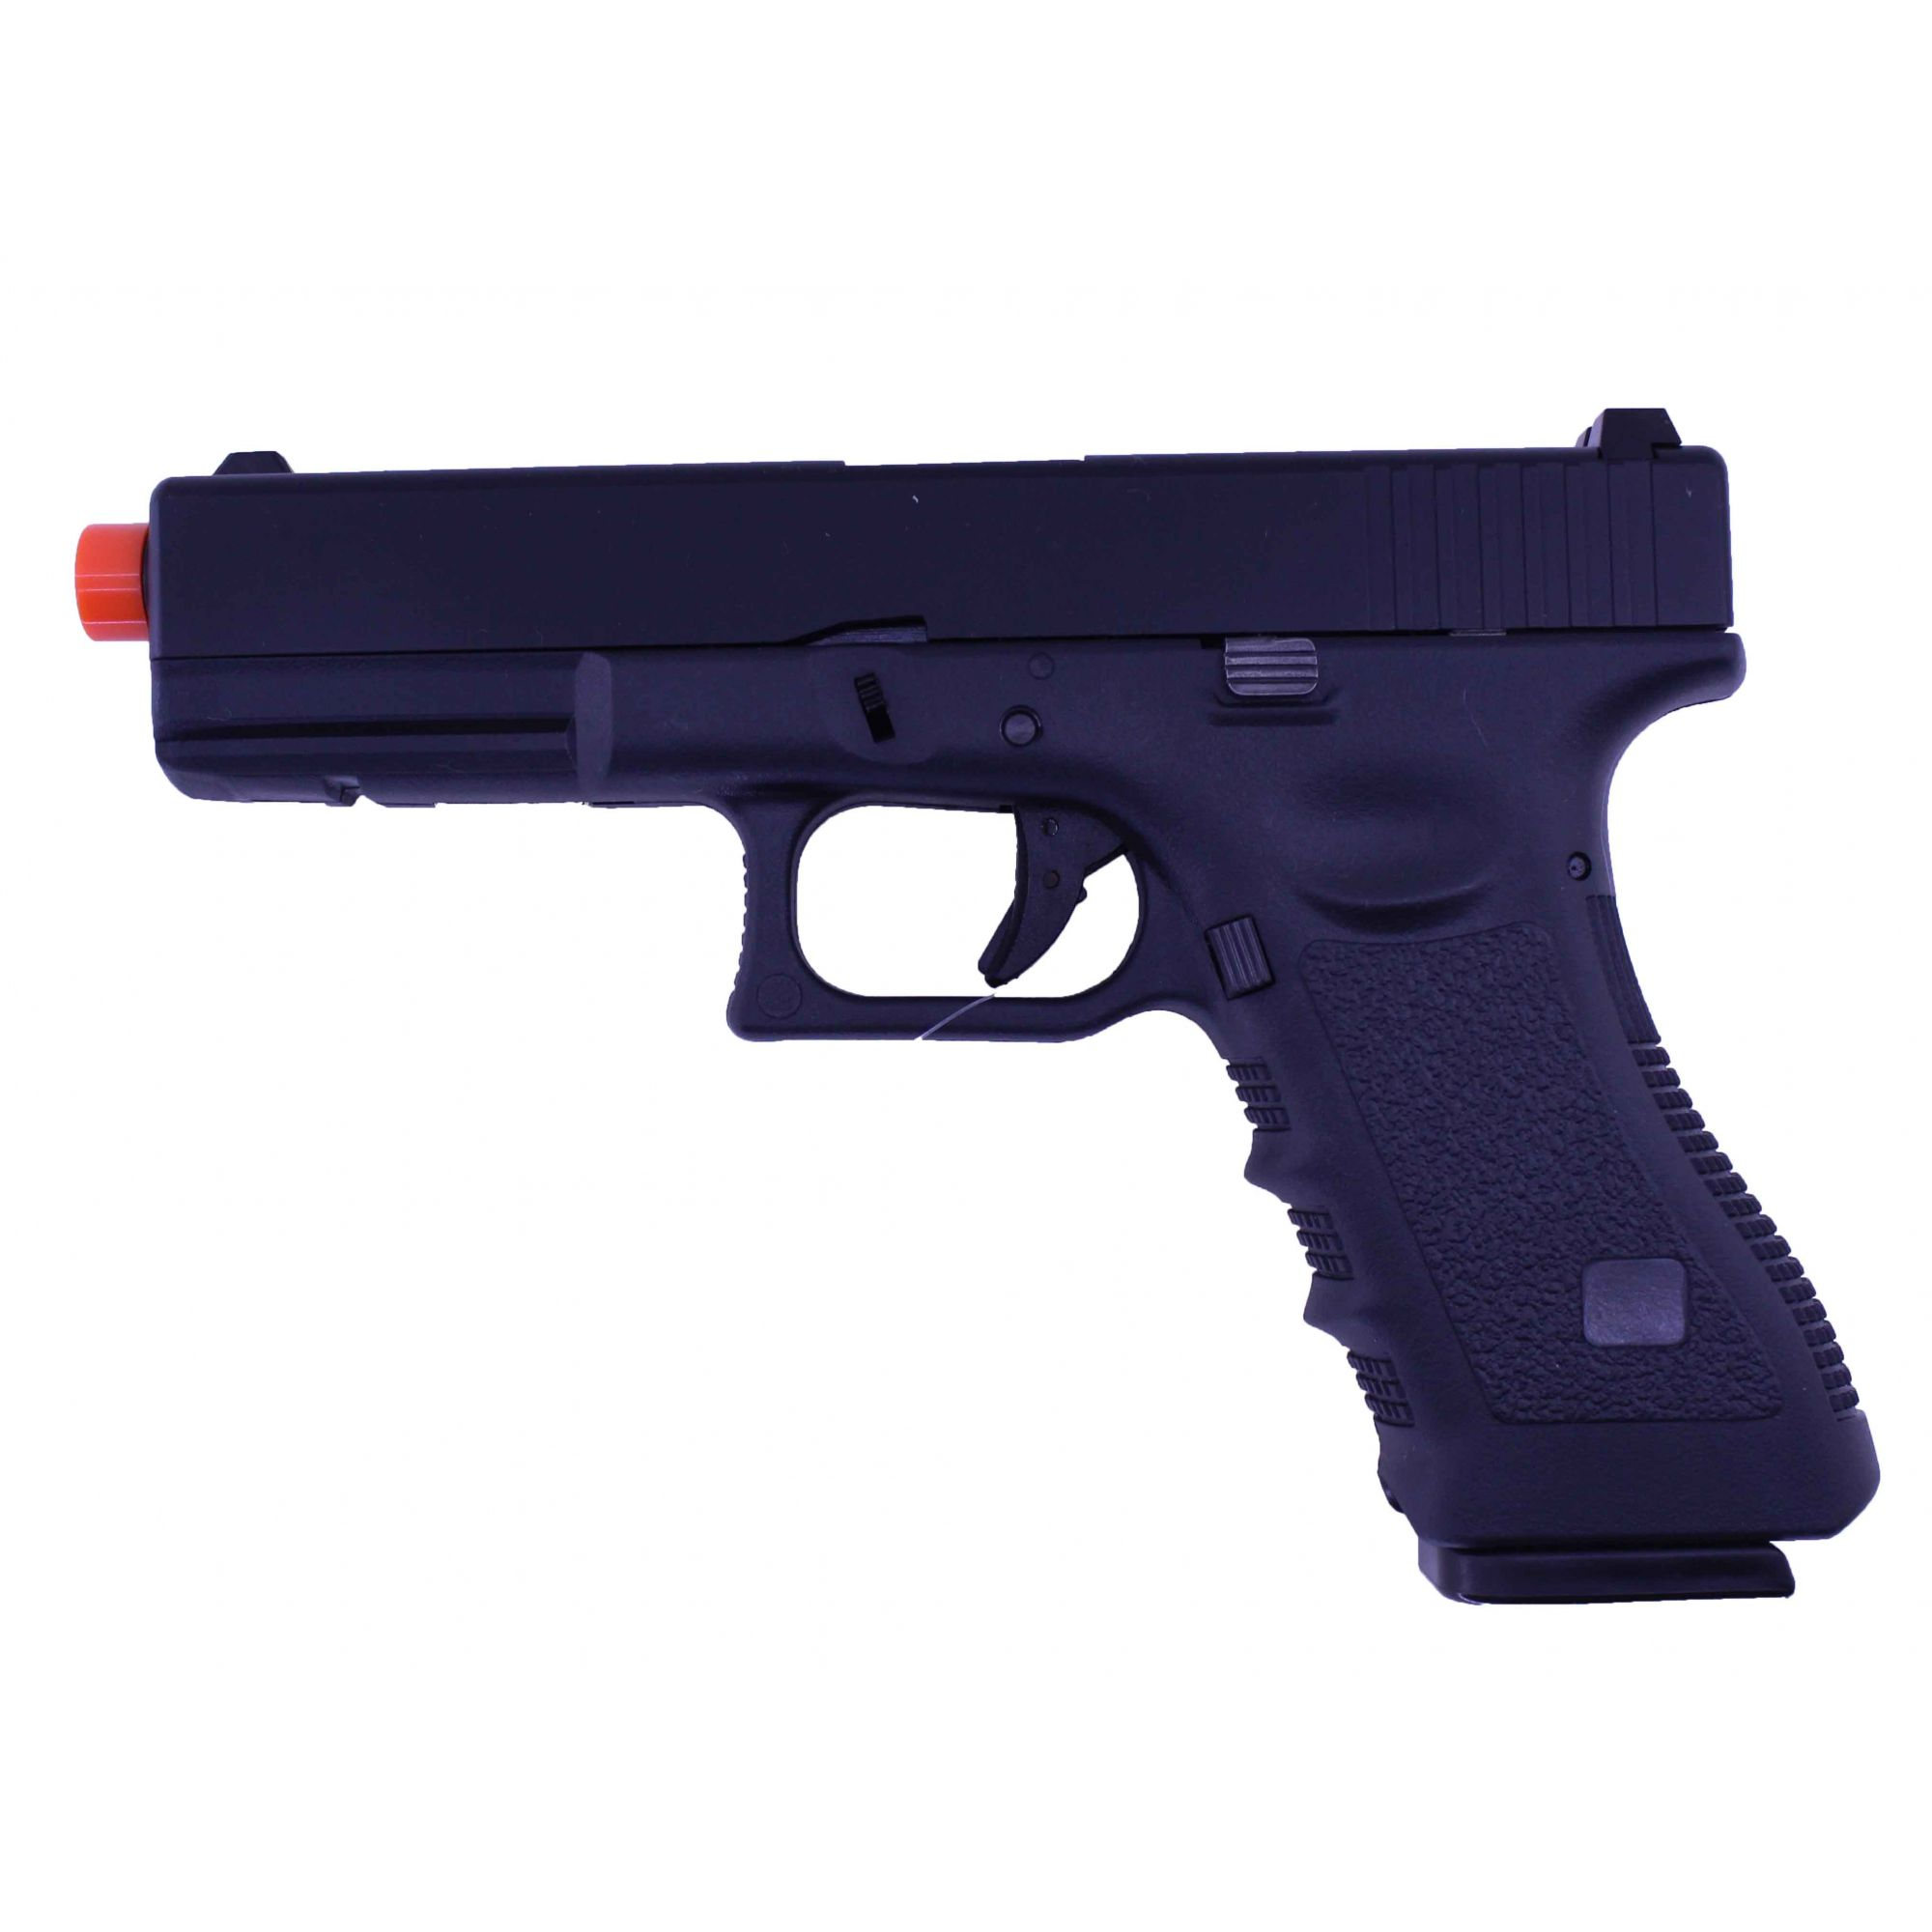 Pistola Airsoft GBB R17 Black Blowback 6mm